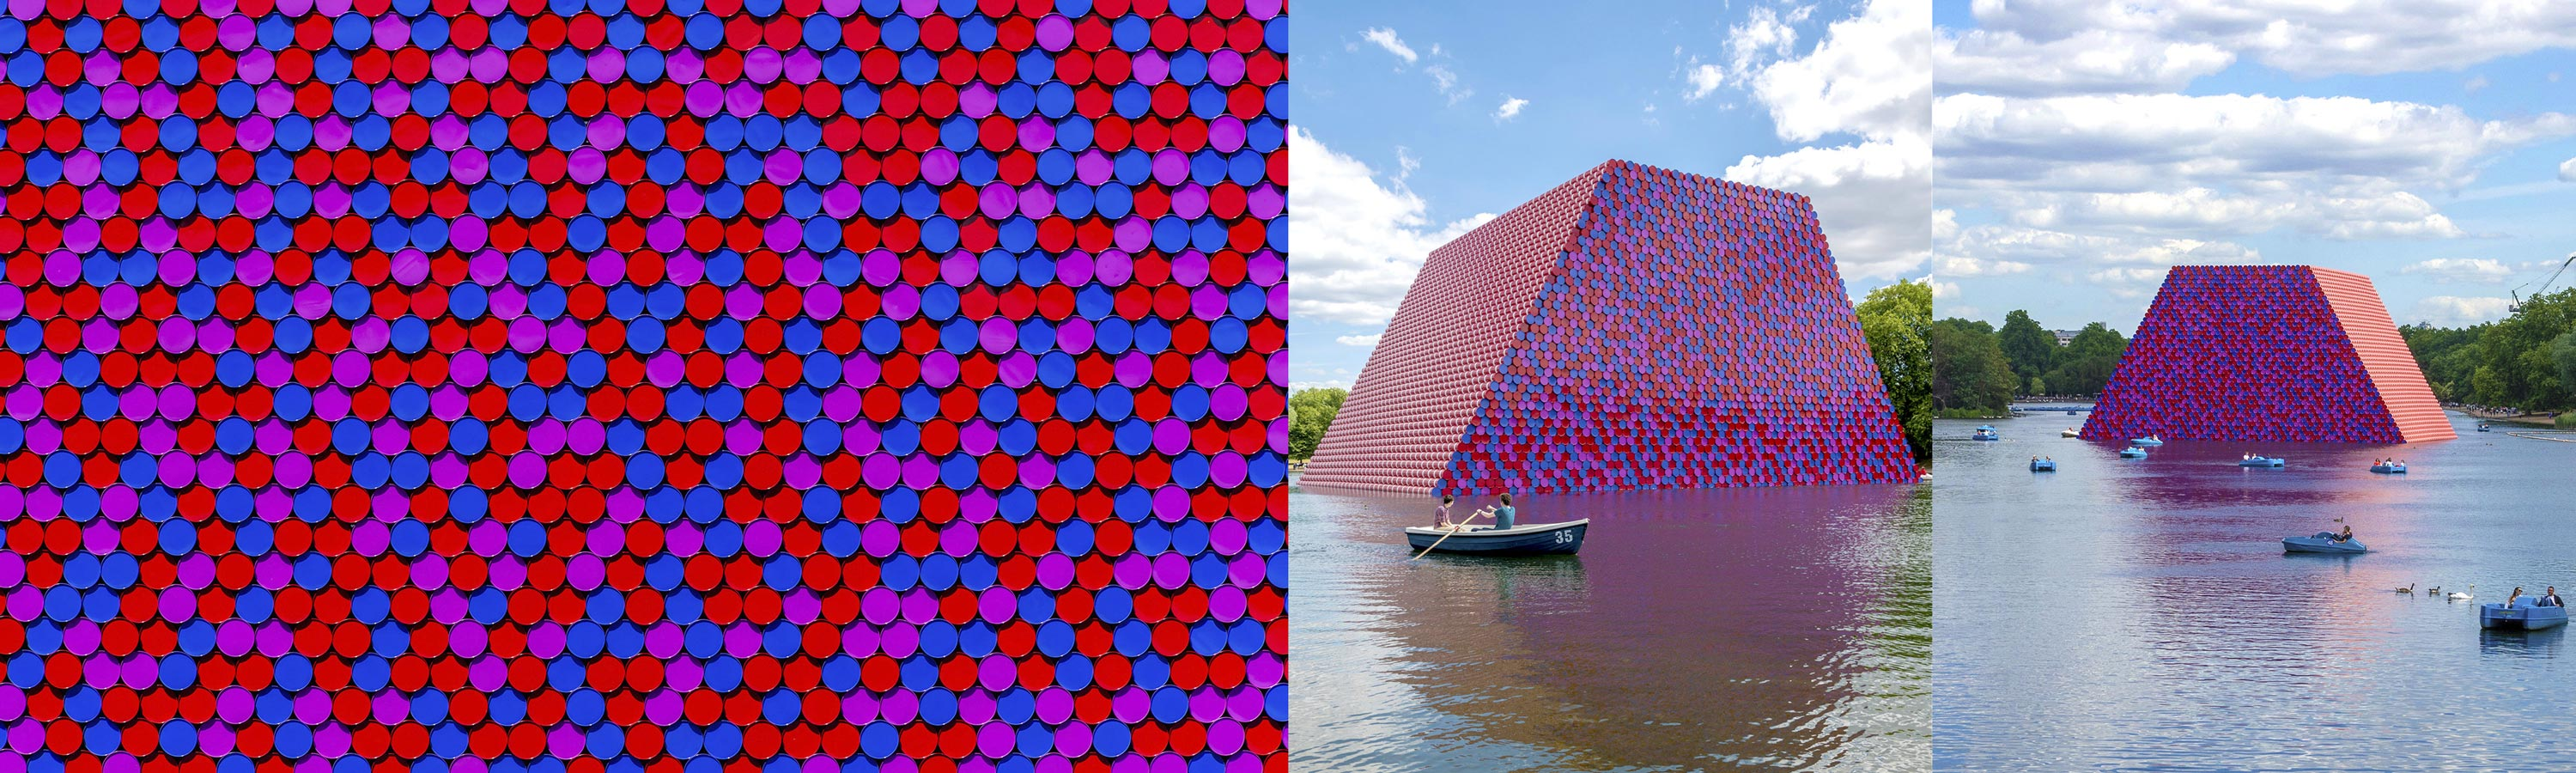 Christo's Mastaba Sculpture of Oil Barrels on the Serpentine Lake